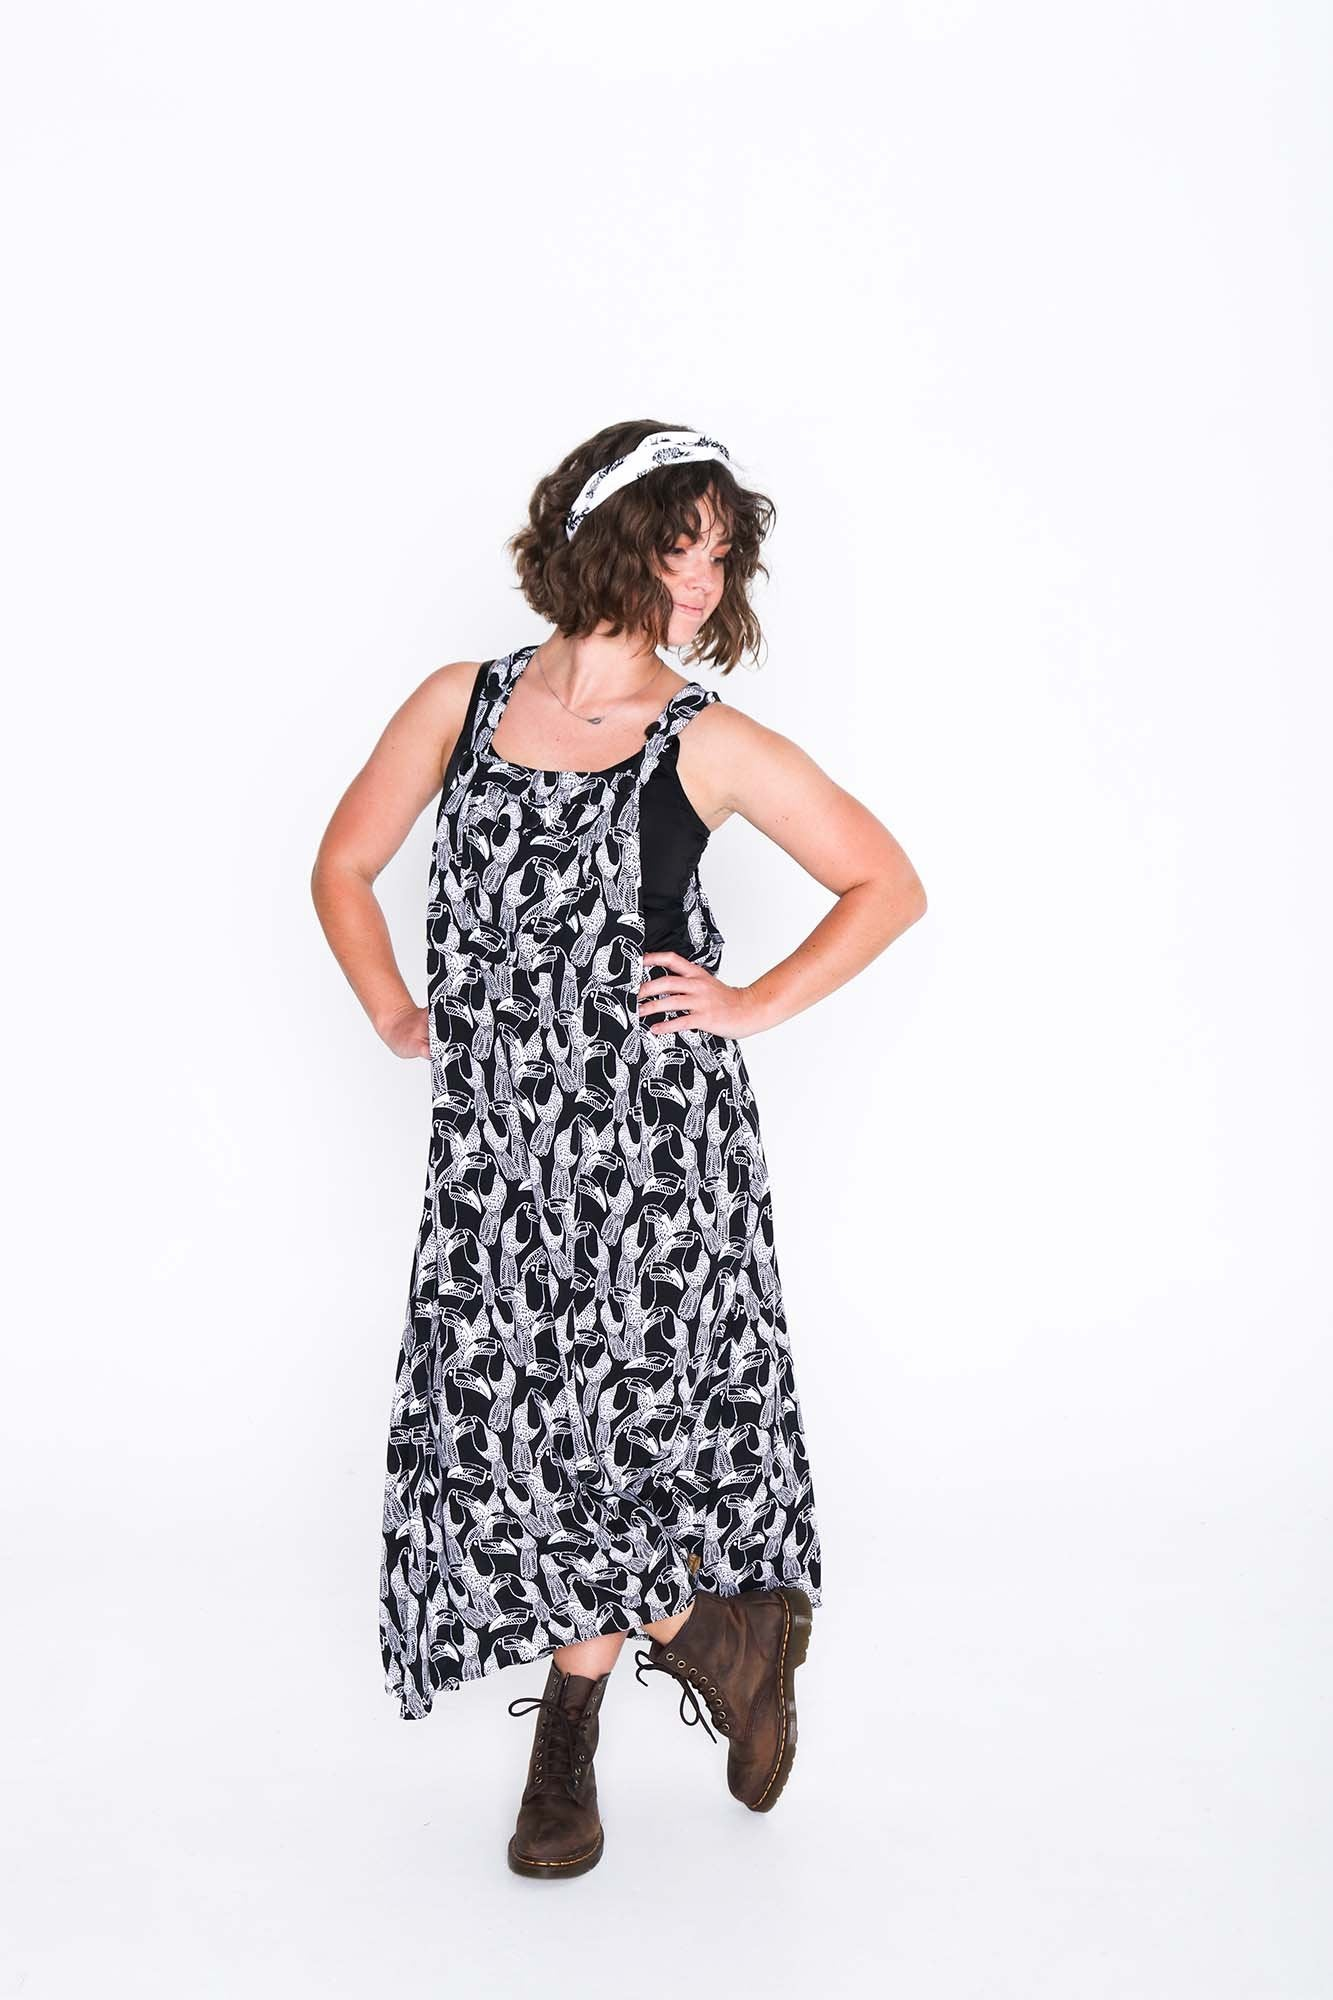 Black and White Toucan Sammy Overall Dress